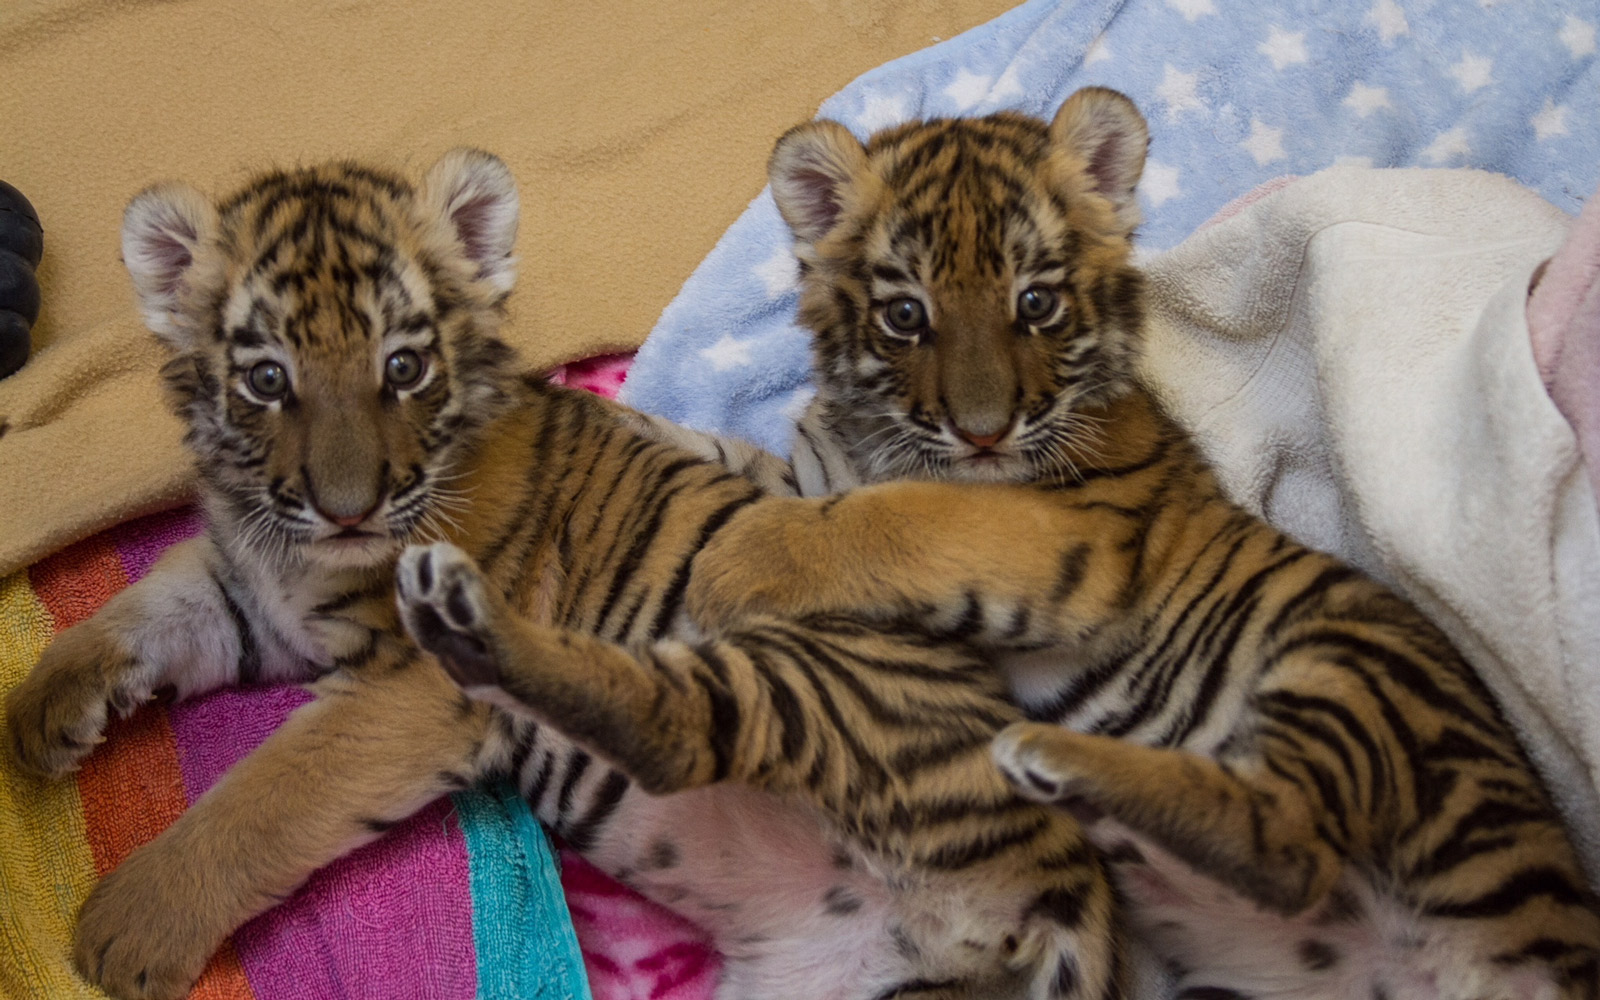 Tiger Cubs at Connecticut's Beardsley Zoo